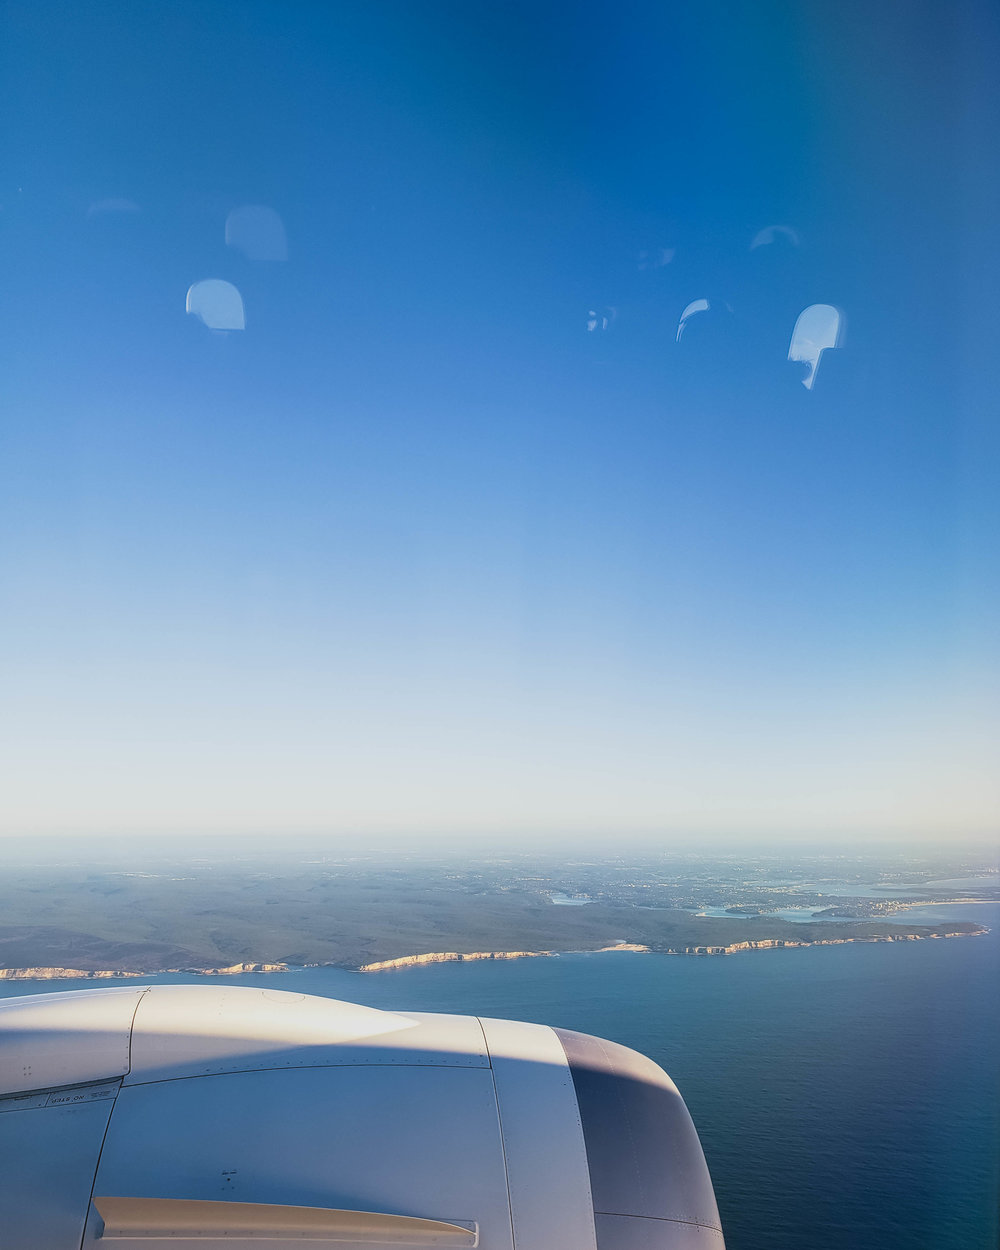 my first view of australia from the plane.